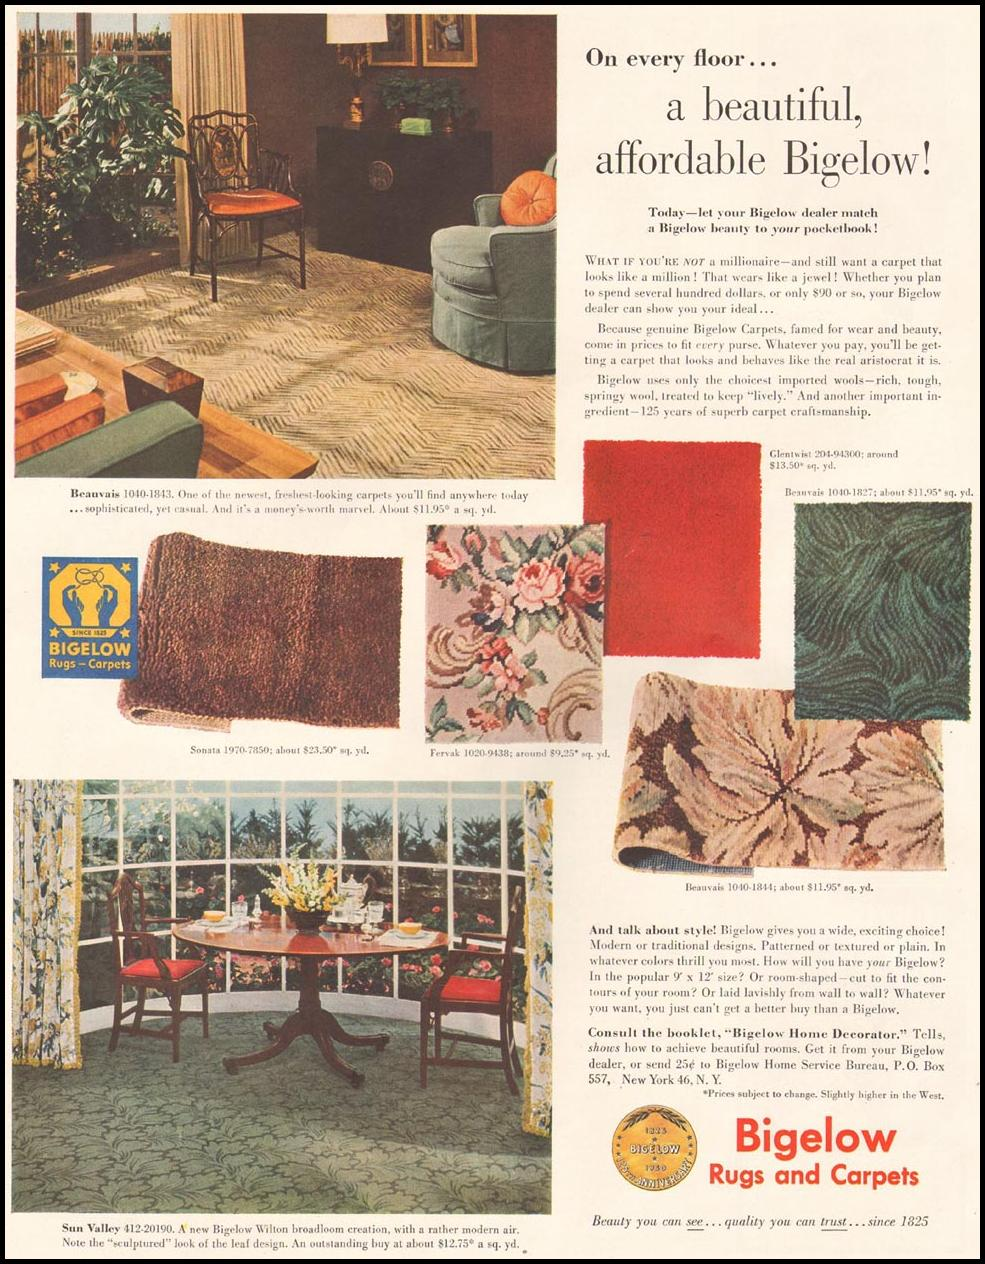 BIGELOW RUGS AND CARPETS LADIES' HOME JOURNAL 11/01/1950 p. 98